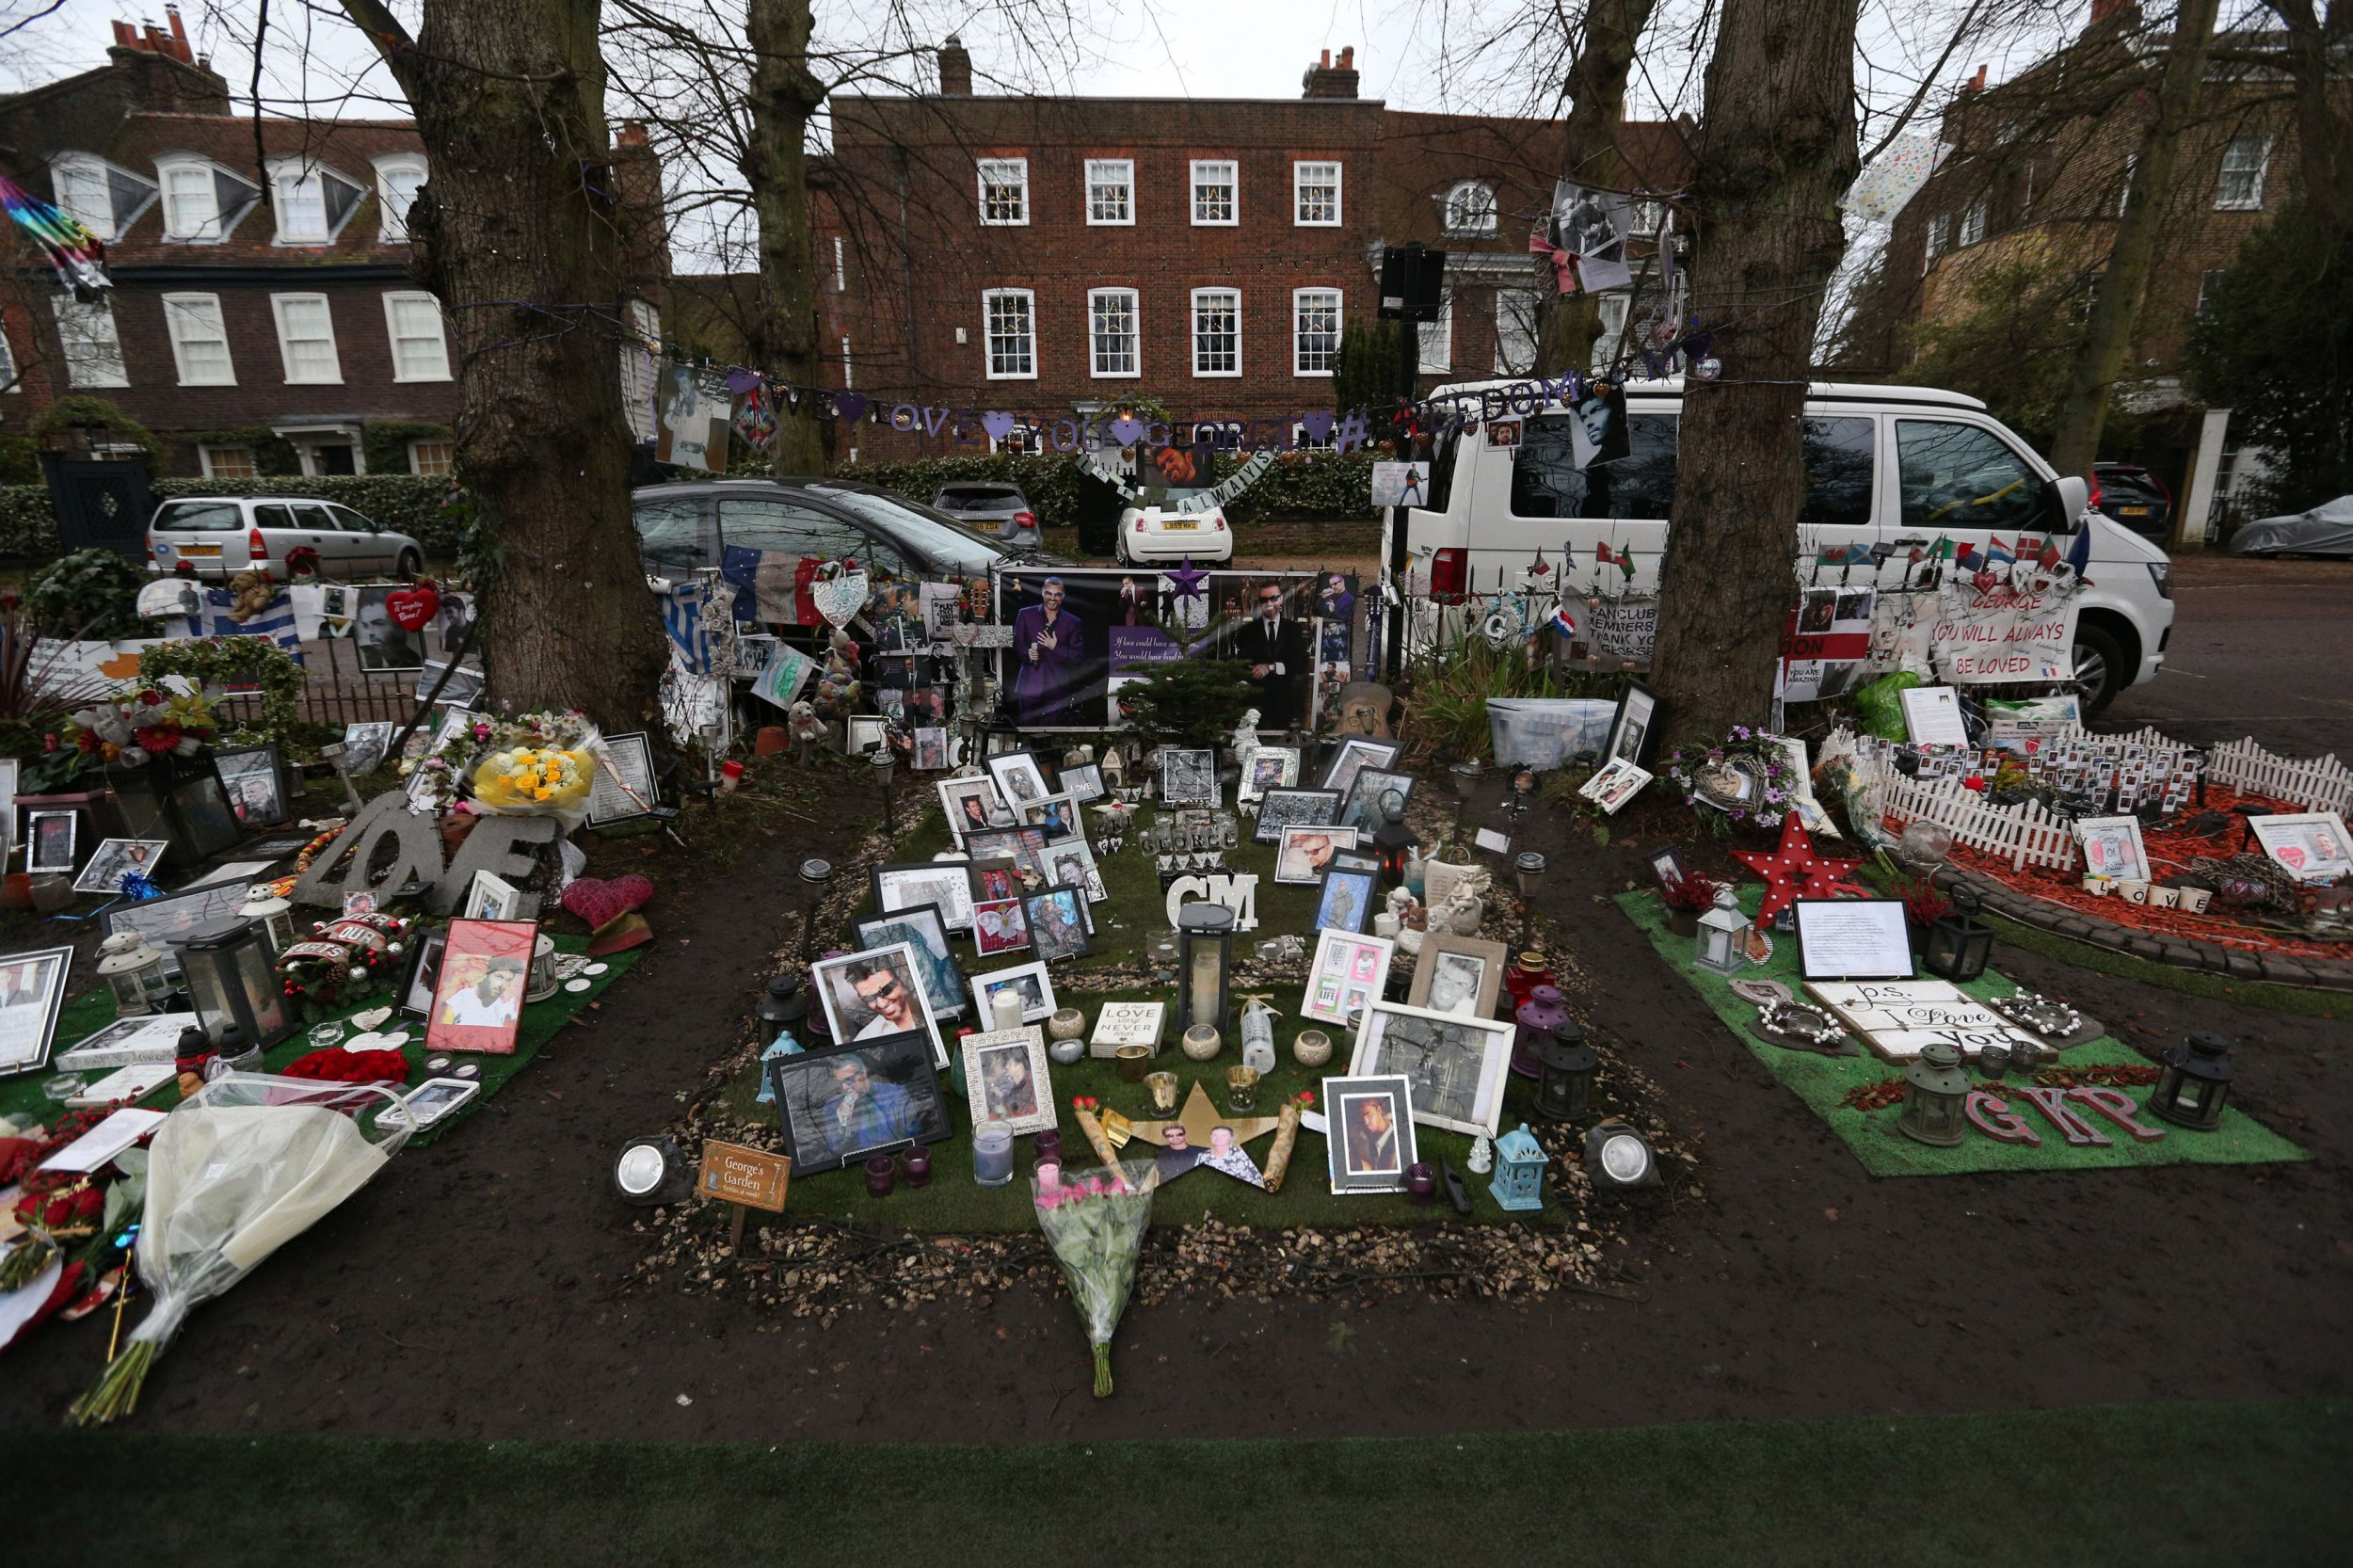 Tributes left at George Michael's home on the first anniversary of his death